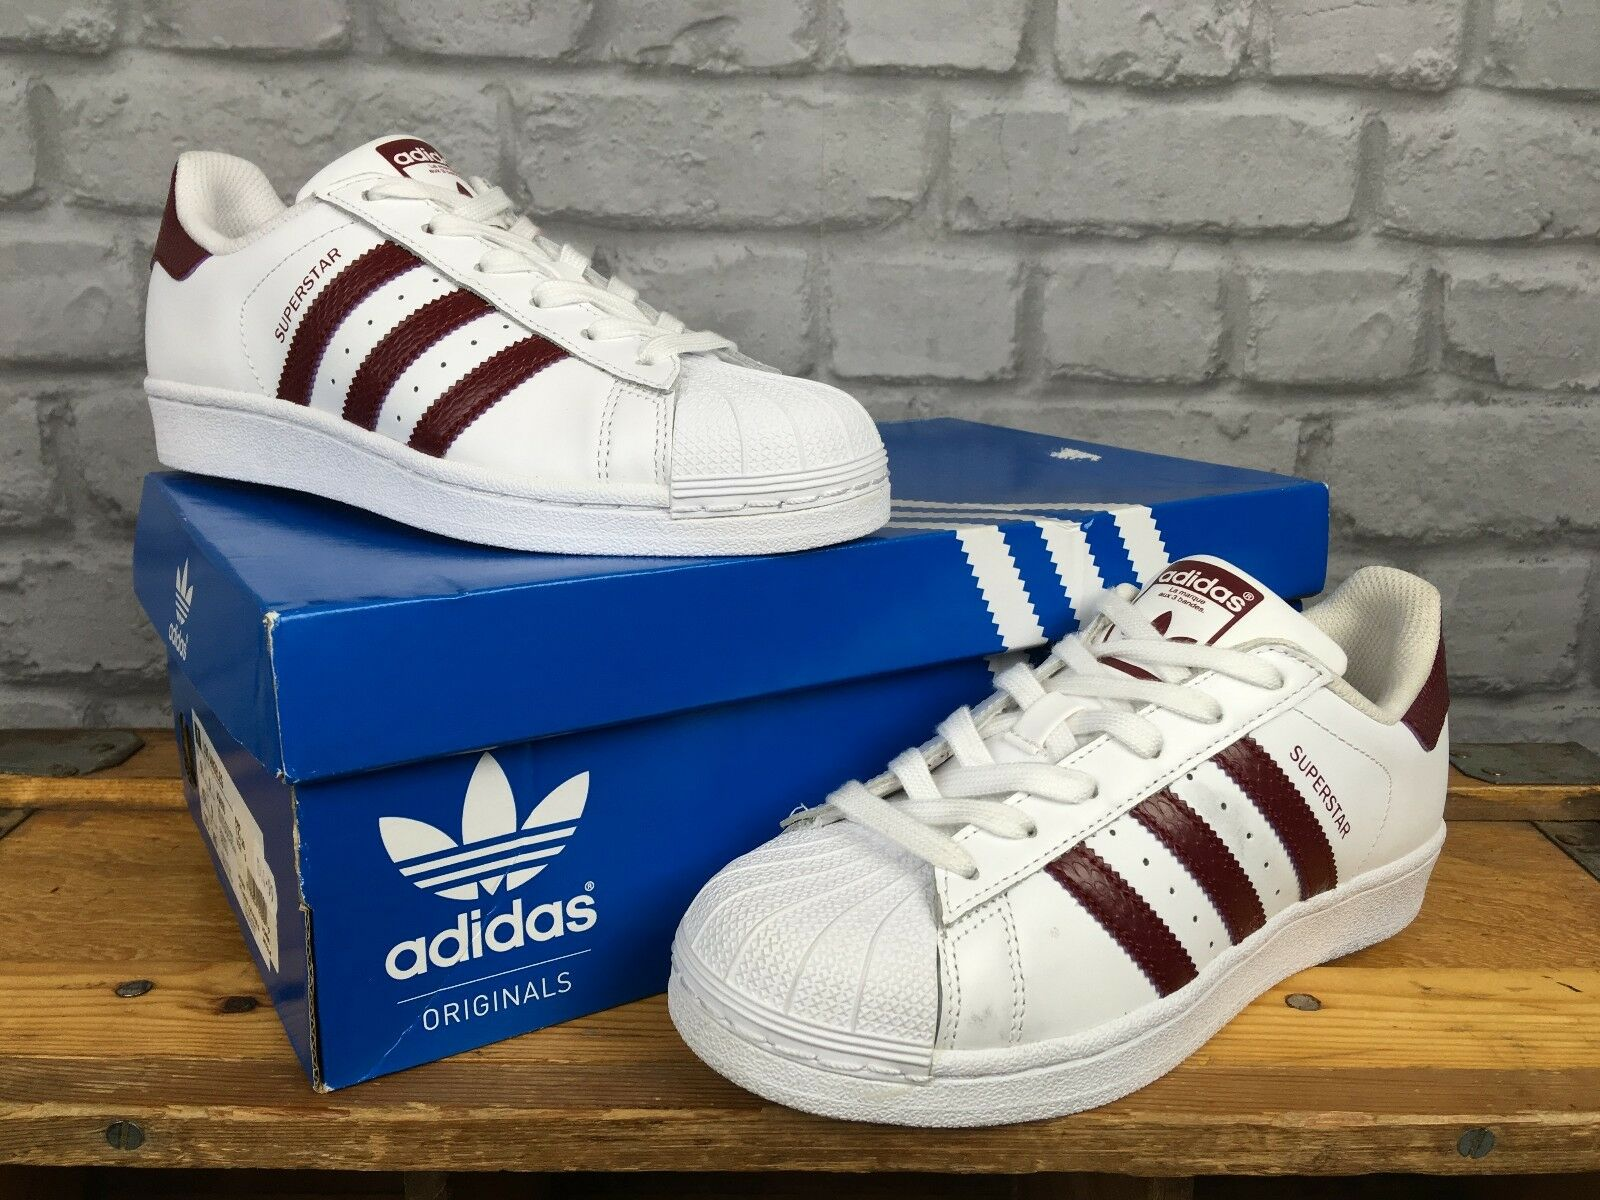 ADIDAS SUPERSTAR LADIES4 EU LIZARD 36 2/3 blanc BURGUNDY LIZARD EU SKIN TRAINERS 56ed8d